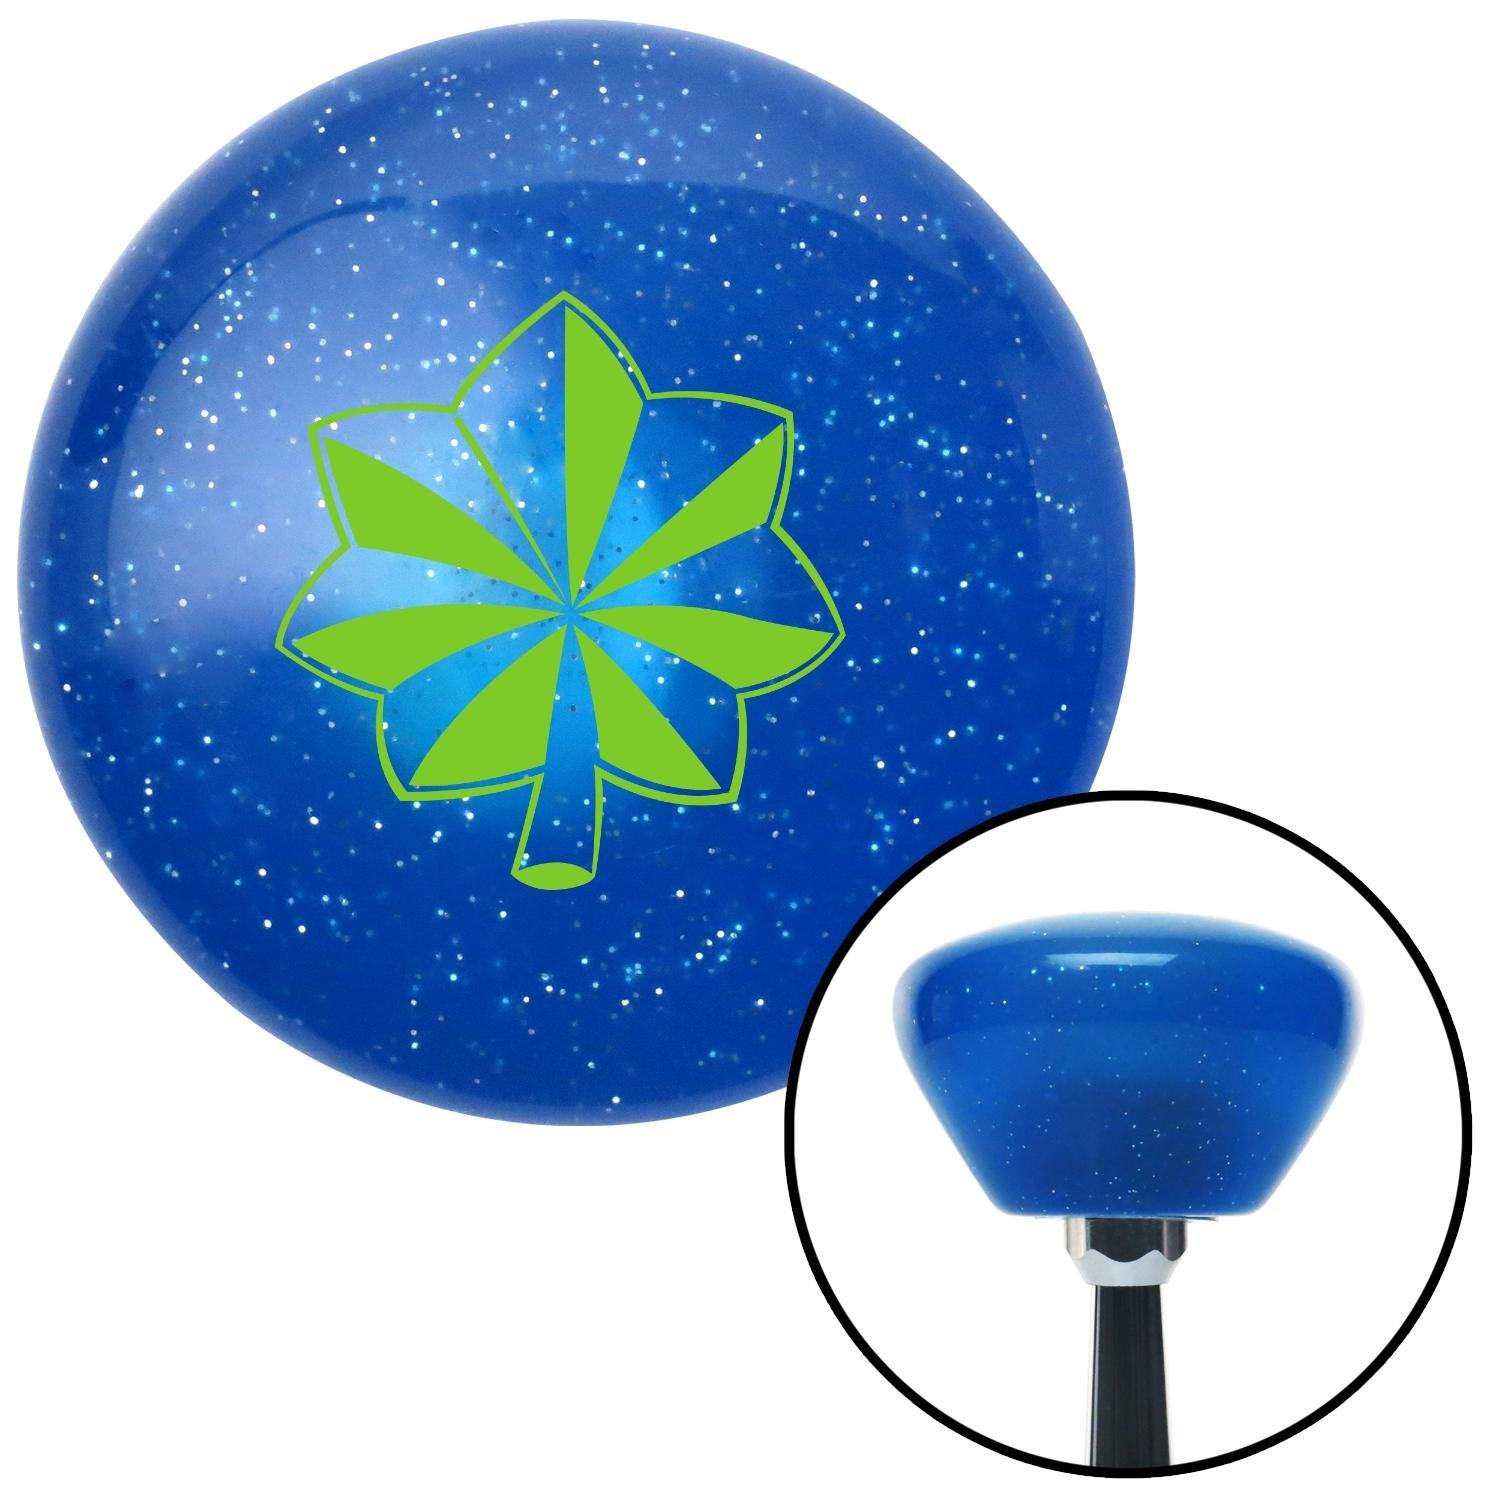 American Shifter 186734 Blue Retro Metal Flake Shift Knob with M16 x 1.5 Insert Green Officer 04 - Major and Lt. Colonel